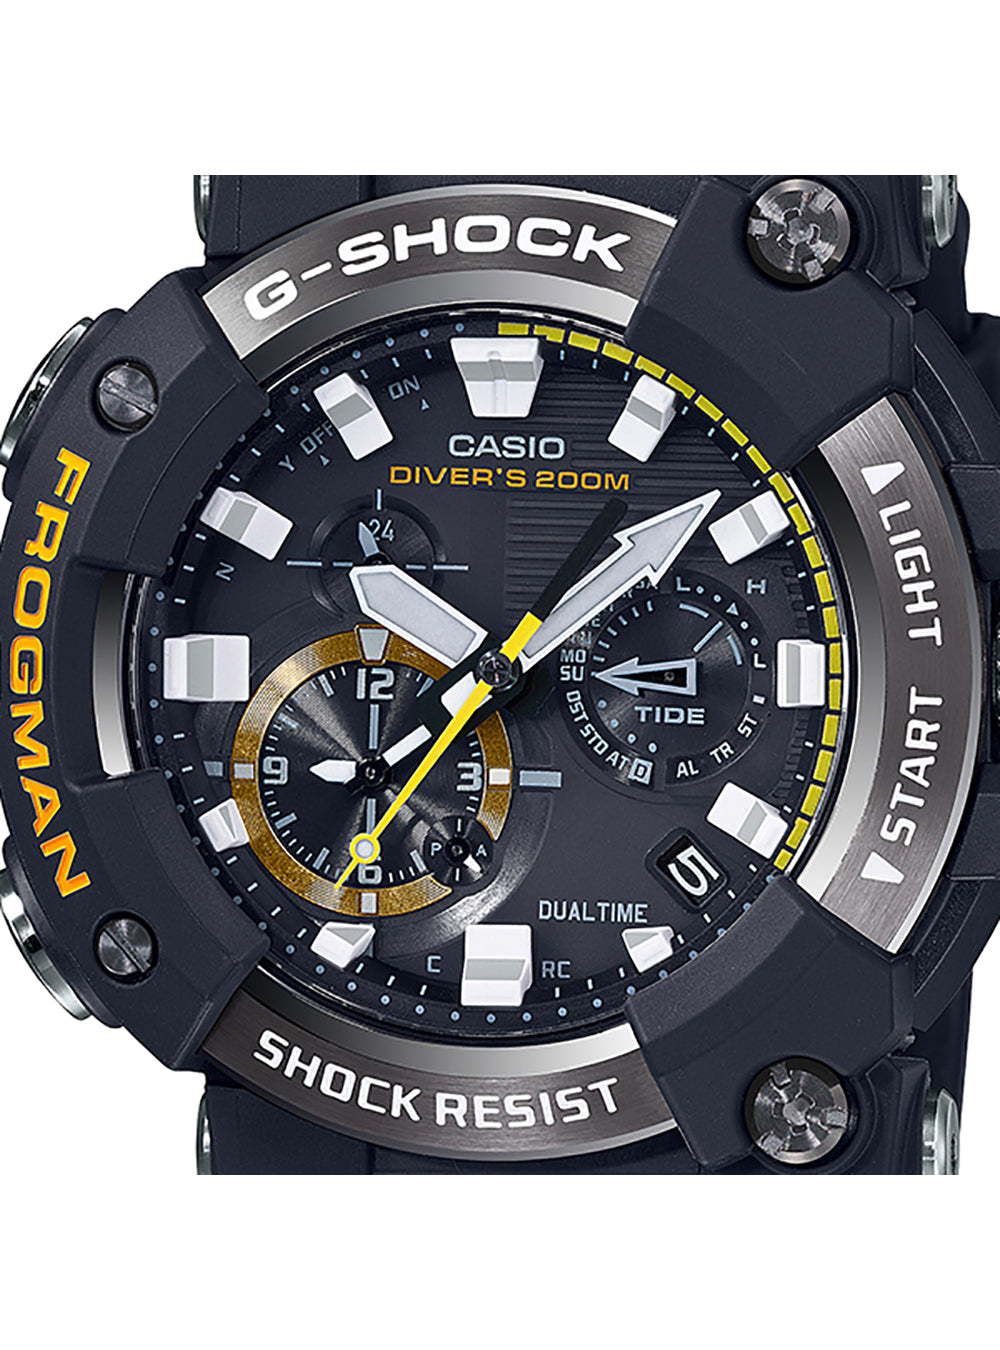 CASIO G-SHOCK MASTER OF G FROGMAN MADE IN JAPAN JDM